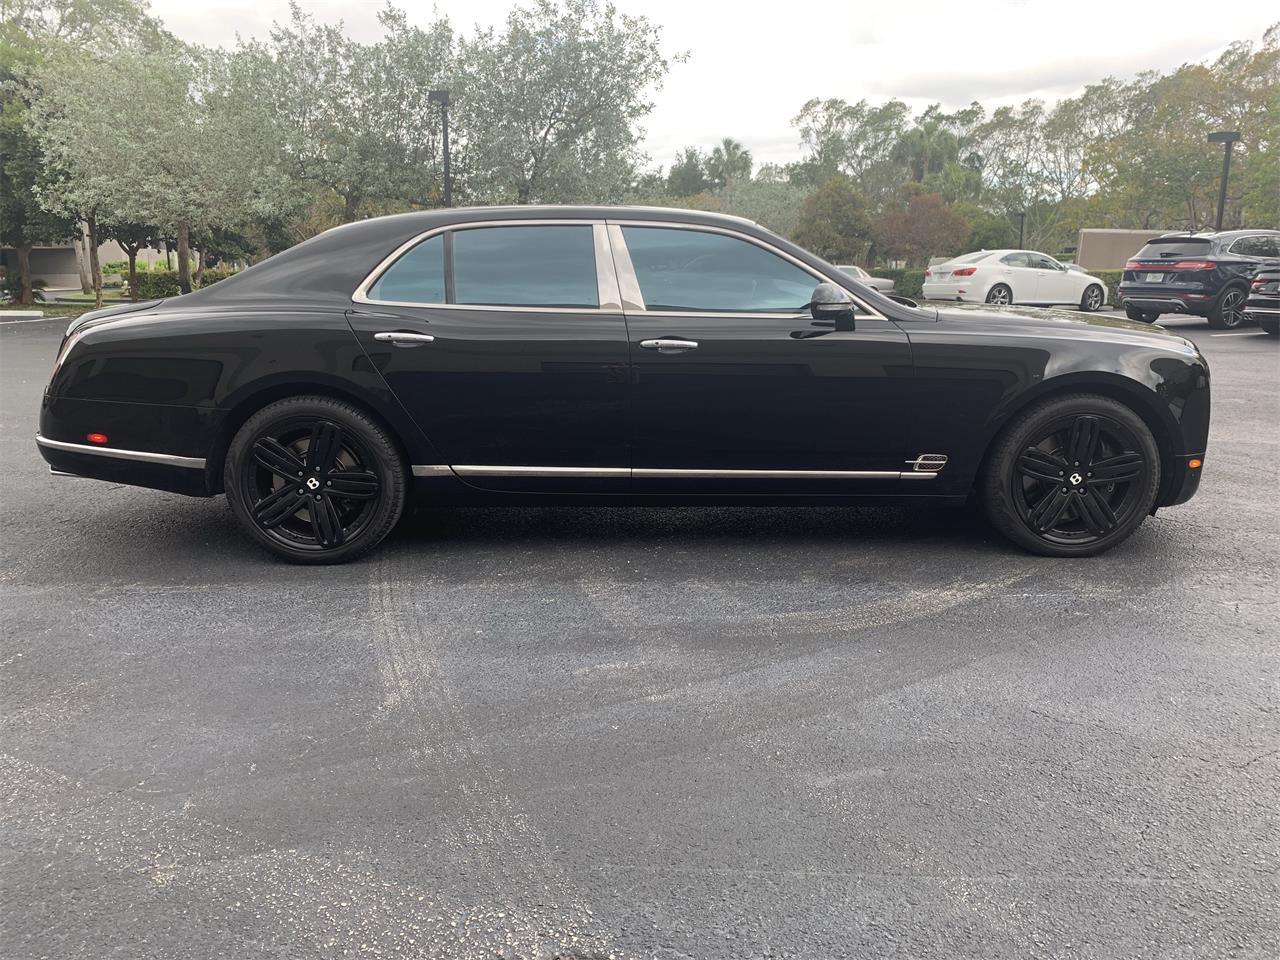 Large Picture of 2011 Mulsanne S - $139,000.00 Offered by European Autobody, Inc. - PXPH